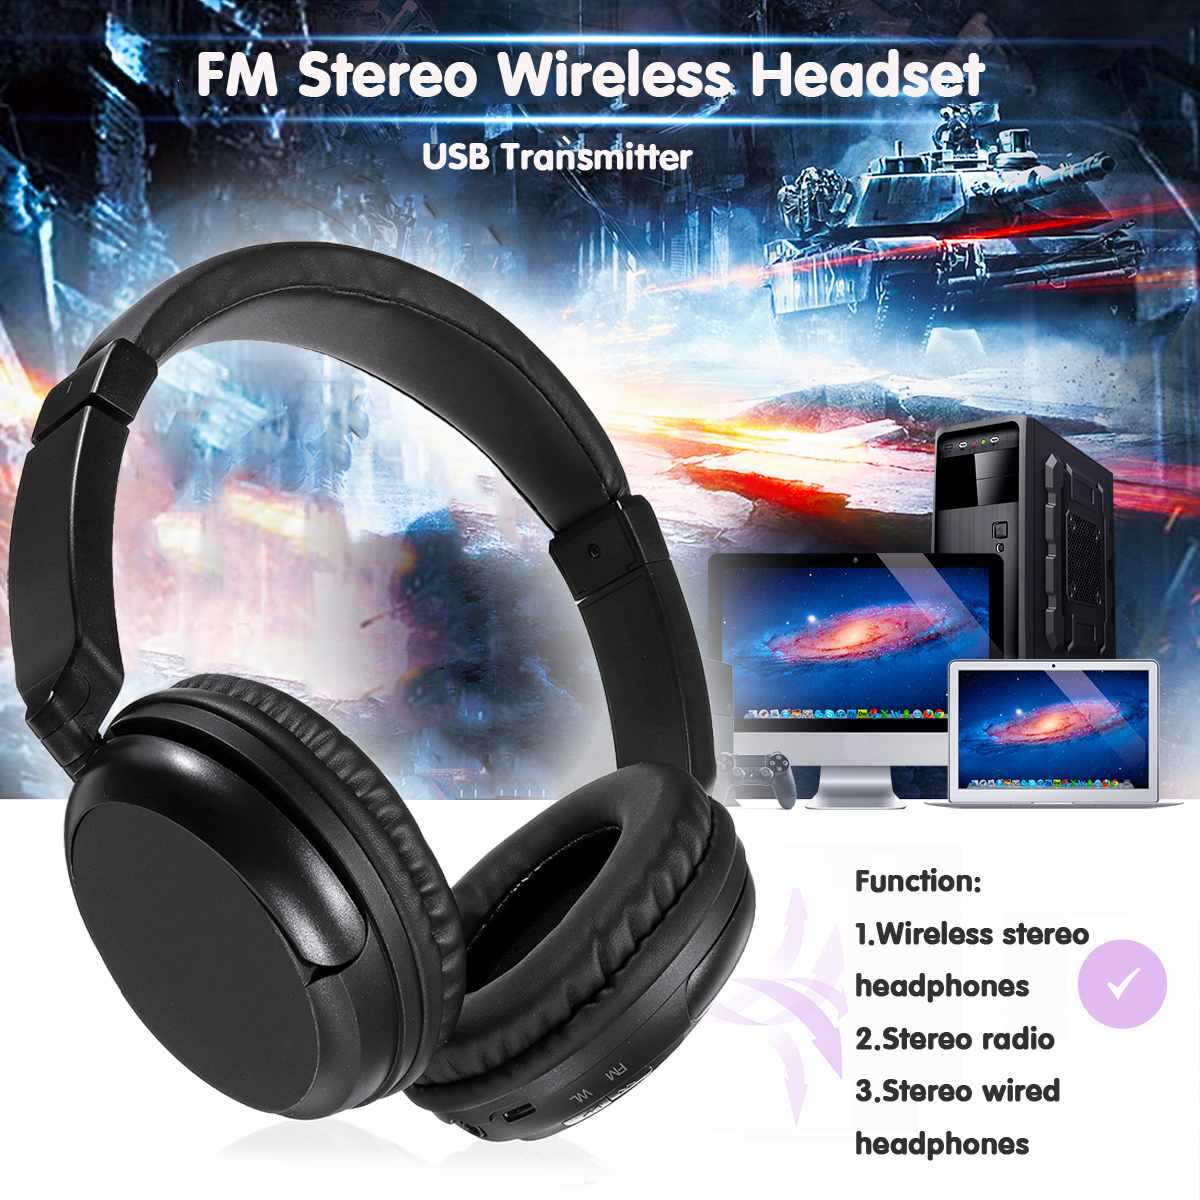 Ws 3680 Tv Stereo Wireless Headset Usb Transmitter Long Distance Wireless Transmission For Pc Mobile Phone Mp3 Aliexpress